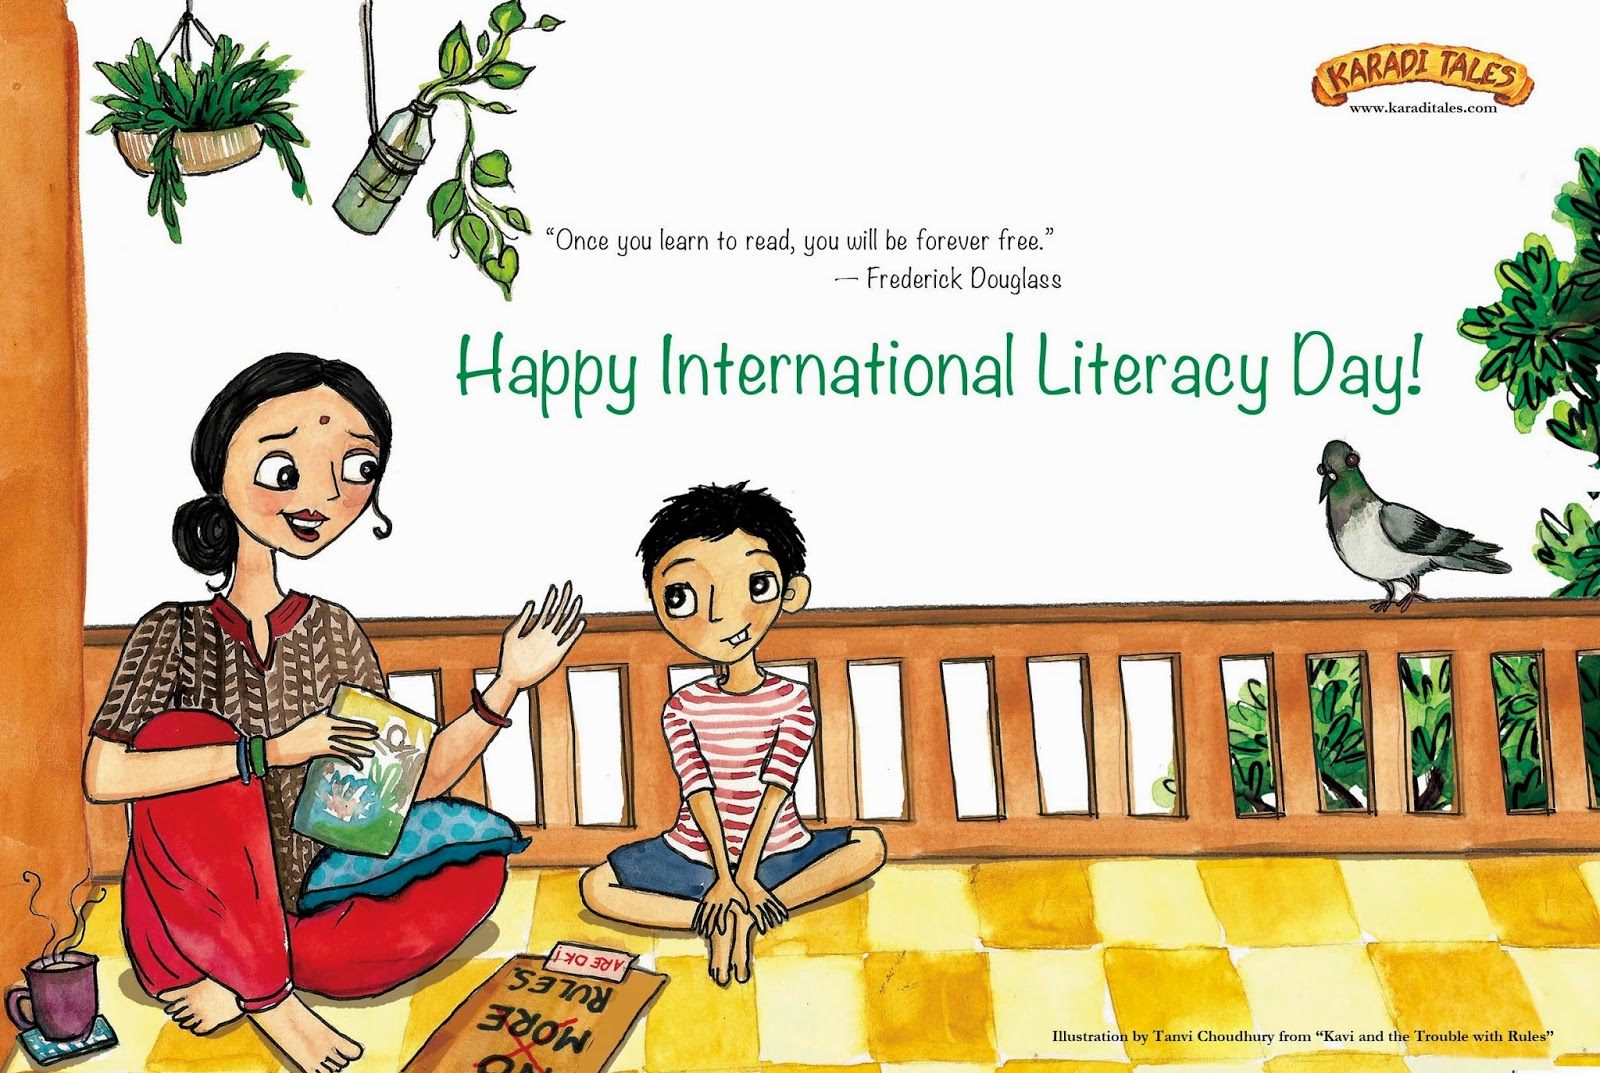 Once You Learn To Read You Will Be Forever Free. Happy International Literacy Day